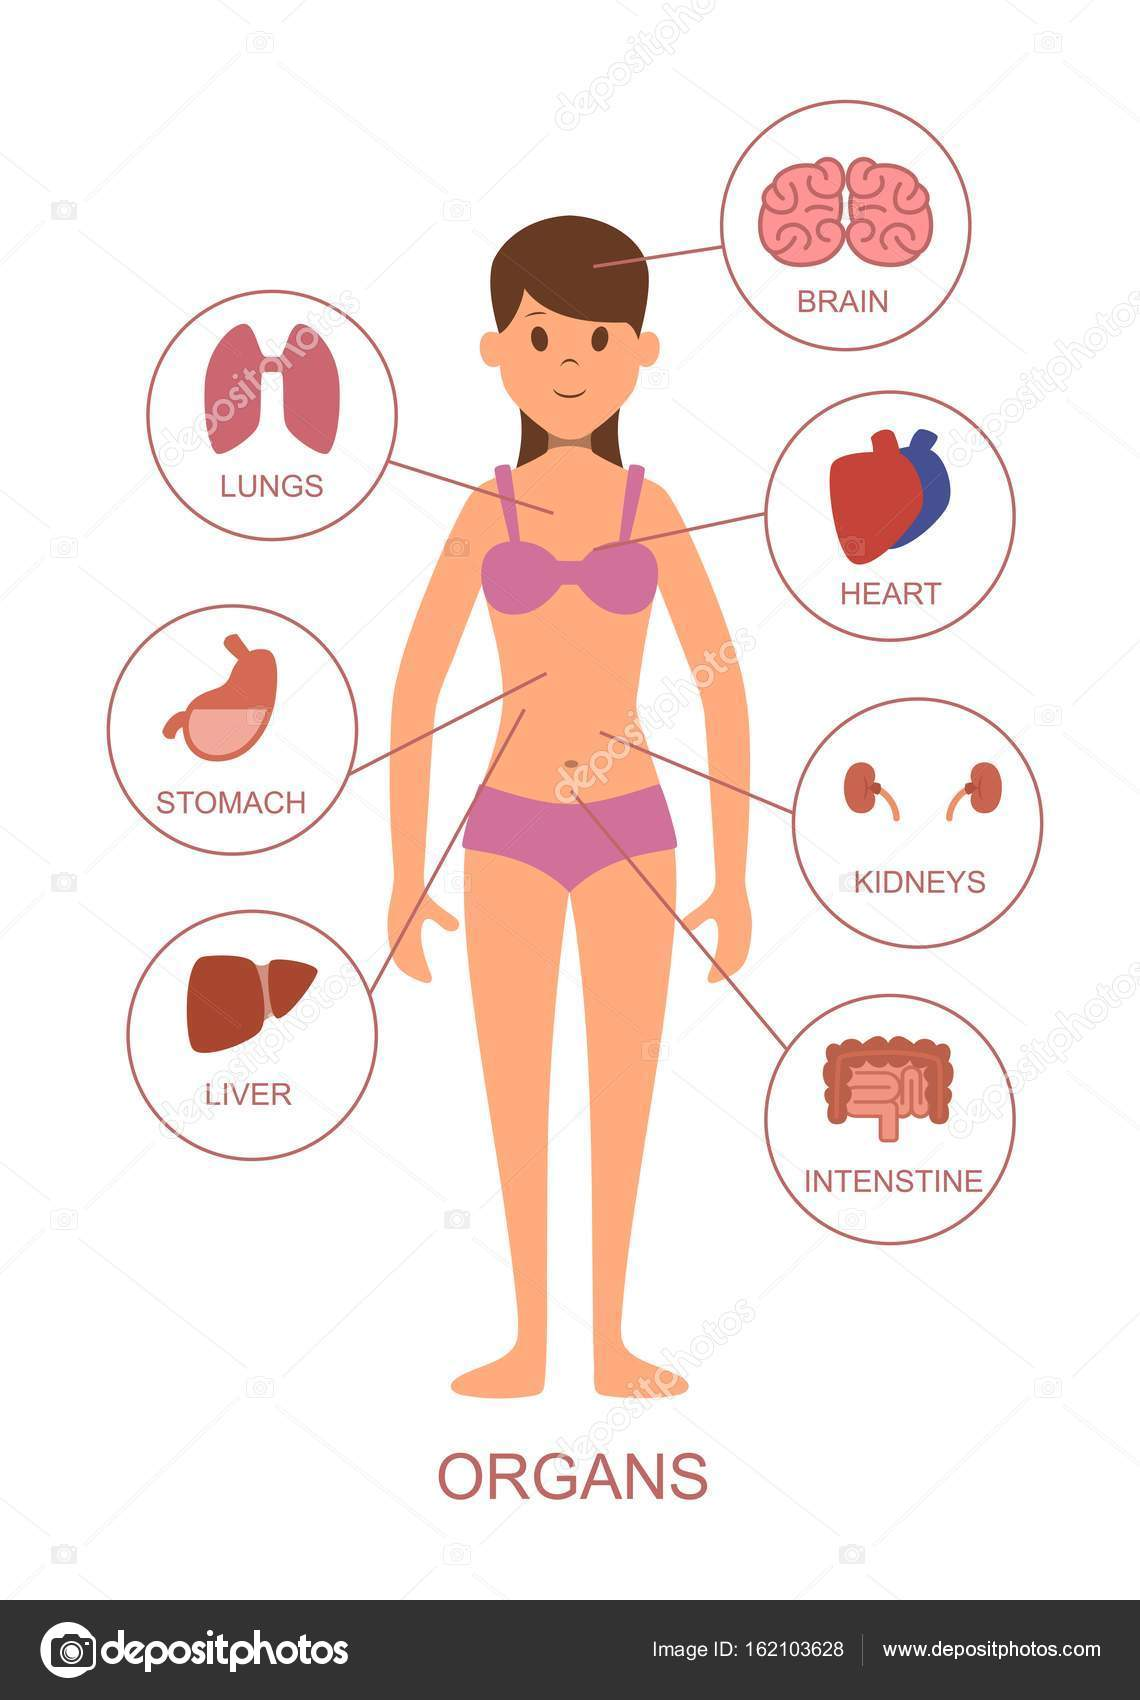 Human Body Organs Human Body Medical Human Anatomy Body System